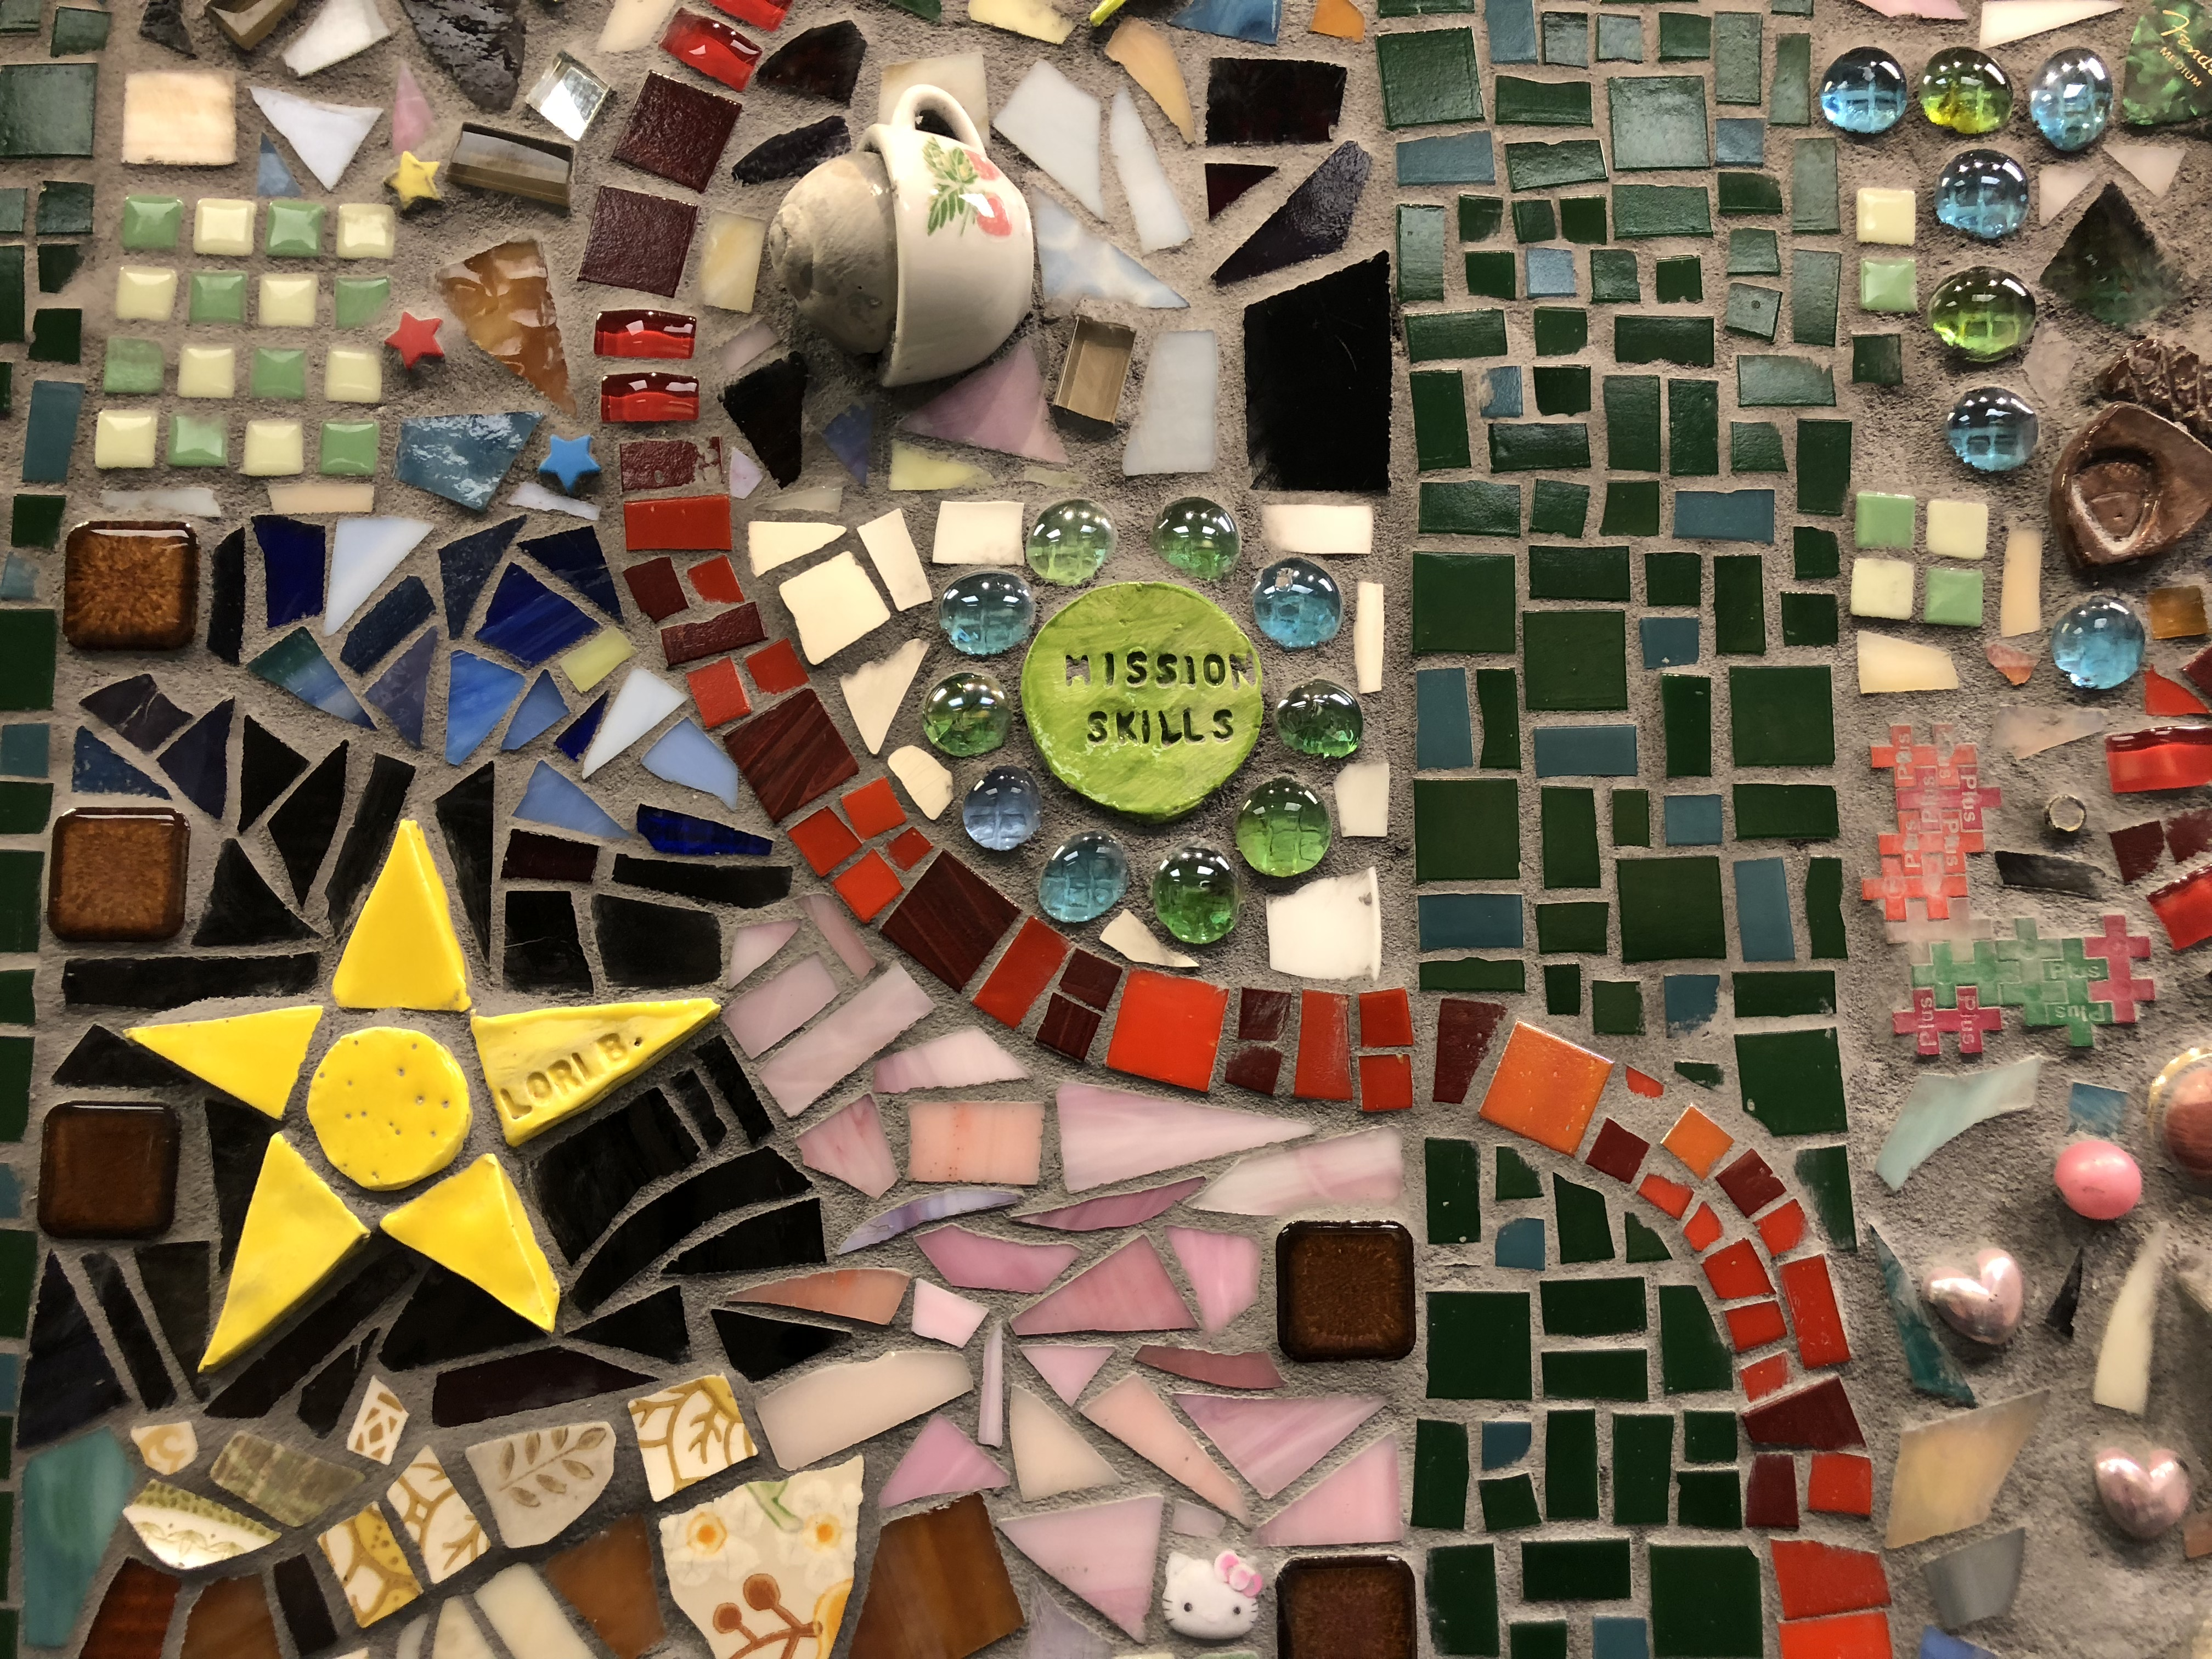 One Common Thread, mosaic mural means more than meets the eye at The Lexington School After School Fine Arts Program